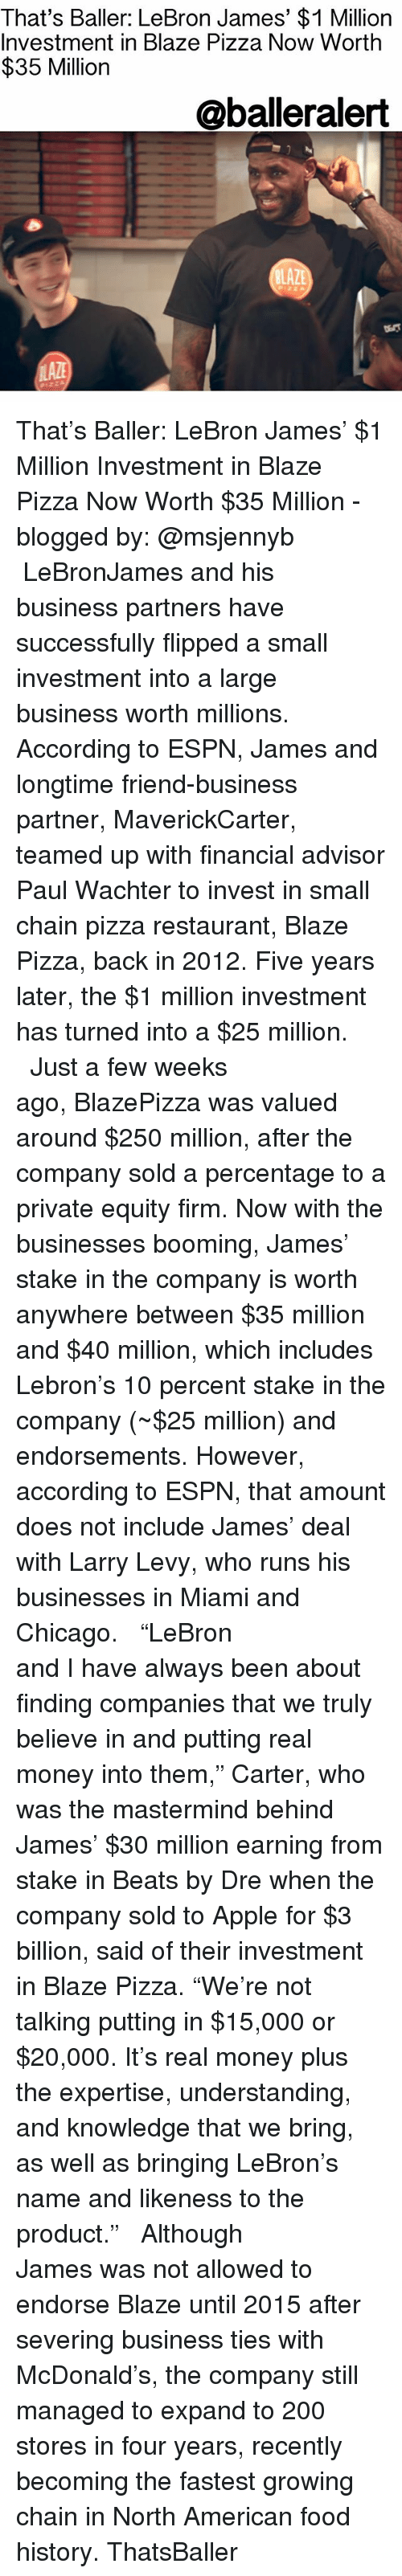 "equity: That's Baller: LeBron James' $1 Million  Investment in Blaze Pizza Now Worth  $35 Milliorn  @balleralert  LAZE That's Baller: LeBron James' $1 Million Investment in Blaze Pizza Now Worth $35 Million - blogged by: @msjennyb ⠀⠀⠀⠀⠀⠀⠀⠀⠀ ⠀⠀⠀⠀⠀⠀⠀⠀⠀ LeBronJames and his business partners have successfully flipped a small investment into a large business worth millions. According to ESPN, James and longtime friend-business partner, MaverickCarter, teamed up with financial advisor Paul Wachter to invest in small chain pizza restaurant, Blaze Pizza, back in 2012. Five years later, the $1 million investment has turned into a $25 million. ⠀⠀⠀⠀⠀⠀⠀⠀⠀ ⠀⠀⠀⠀⠀⠀⠀⠀⠀ Just a few weeks ago, BlazePizza was valued around $250 million, after the company sold a percentage to a private equity firm. Now with the businesses booming, James' stake in the company is worth anywhere between $35 million and $40 million, which includes Lebron's 10 percent stake in the company (~$25 million) and endorsements. However, according to ESPN, that amount does not include James' deal with Larry Levy, who runs his businesses in Miami and Chicago. ⠀⠀⠀⠀⠀⠀⠀⠀⠀ ⠀⠀⠀⠀⠀⠀⠀⠀⠀ ""LeBron and I have always been about finding companies that we truly believe in and putting real money into them,"" Carter, who was the mastermind behind James' $30 million earning from stake in Beats by Dre when the company sold to Apple for $3 billion, said of their investment in Blaze Pizza. ""We're not talking putting in $15,000 or $20,000. It's real money plus the expertise, understanding, and knowledge that we bring, as well as bringing LeBron's name and likeness to the product."" ⠀⠀⠀⠀⠀⠀⠀⠀⠀ ⠀⠀⠀⠀⠀⠀⠀⠀⠀ Although James was not allowed to endorse Blaze until 2015 after severing business ties with McDonald's, the company still managed to expand to 200 stores in four years, recently becoming the fastest growing chain in North American food history. ThatsBaller"